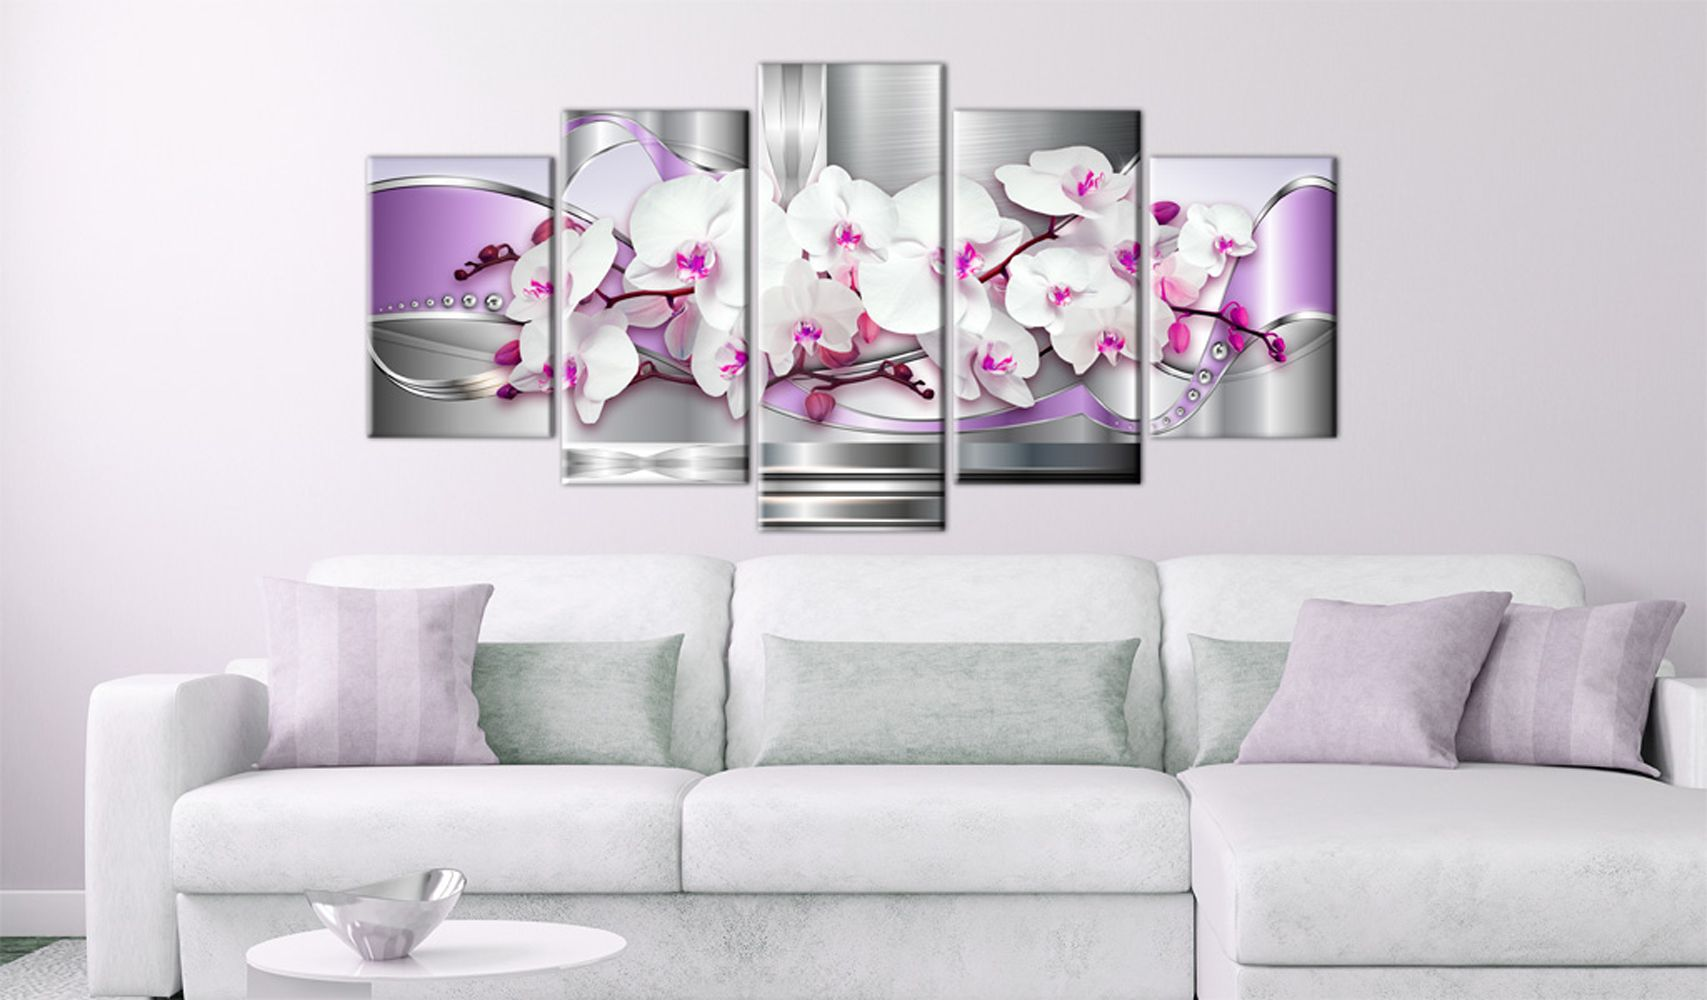 Obraz orchid and fantasy pekne b vaj - Tableau original pour salon ...